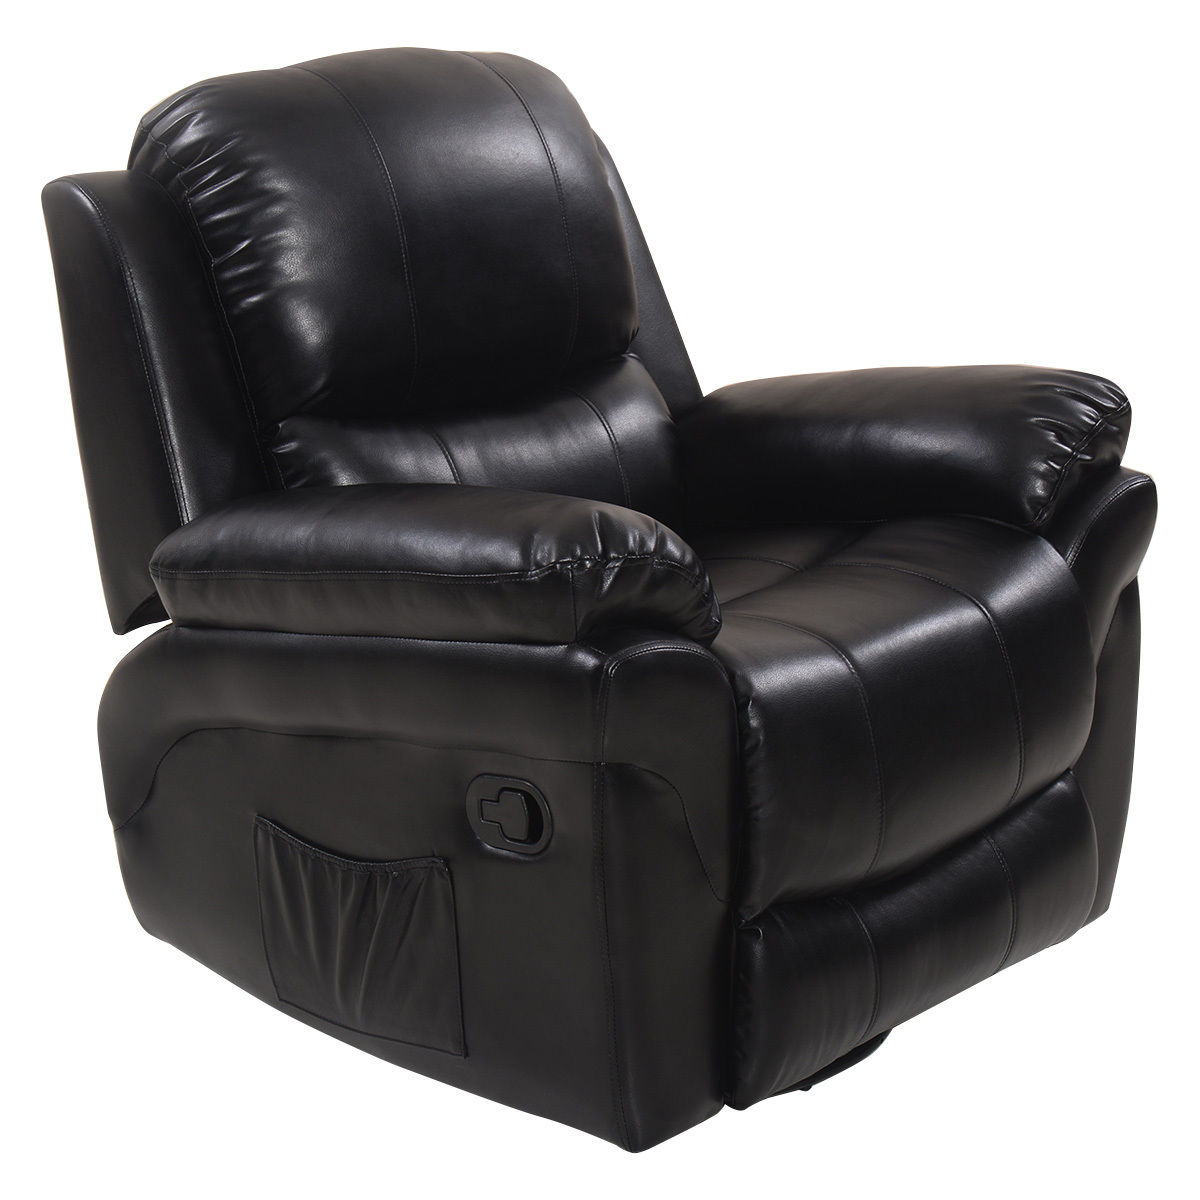 Gymax Ergonomic Massage Sofa Recliner Chair Rocking Lounge Heated Swivel